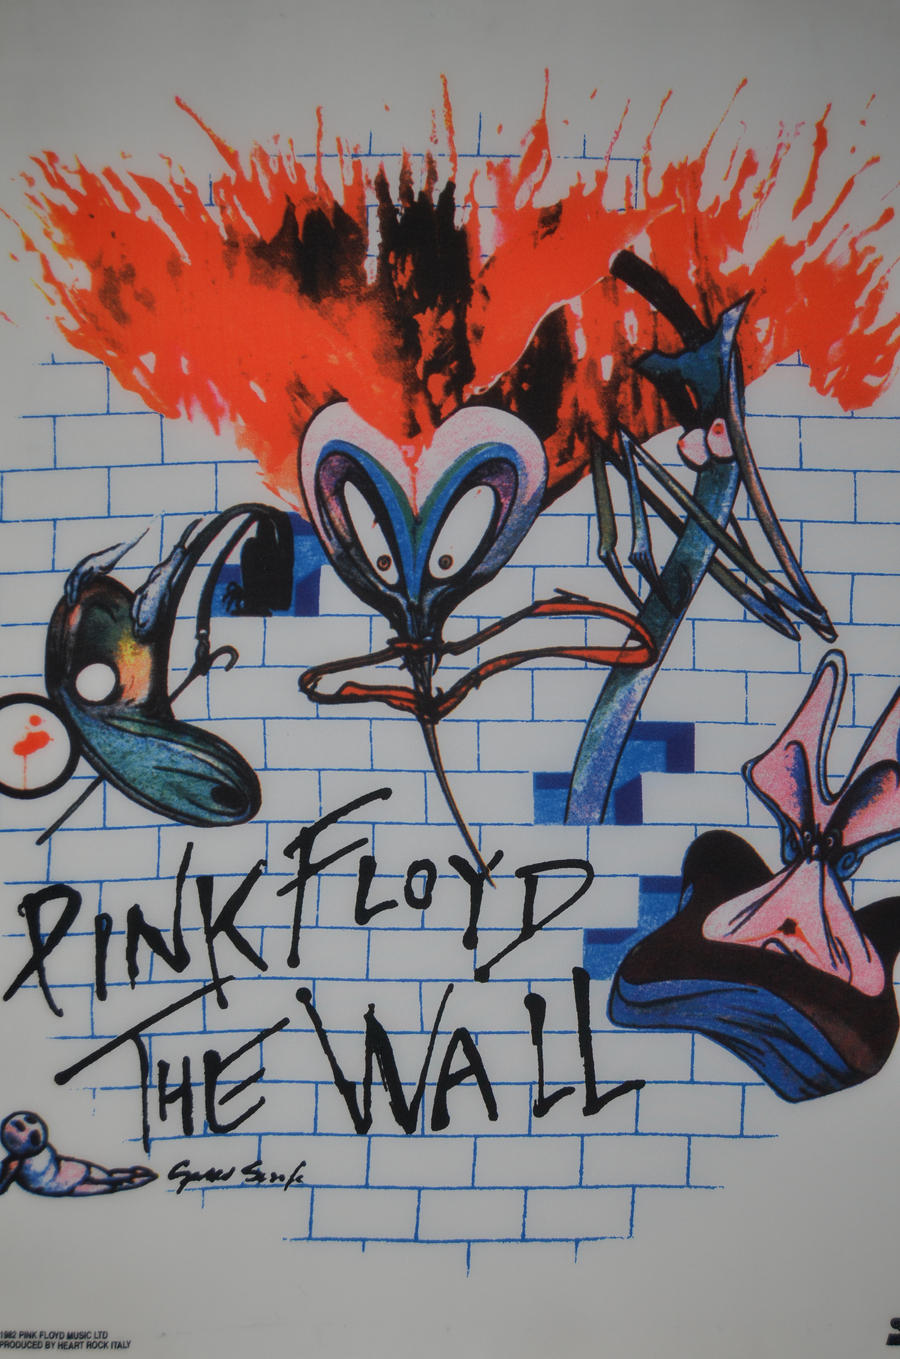 pink floyd the wall by dinkok on deviantart